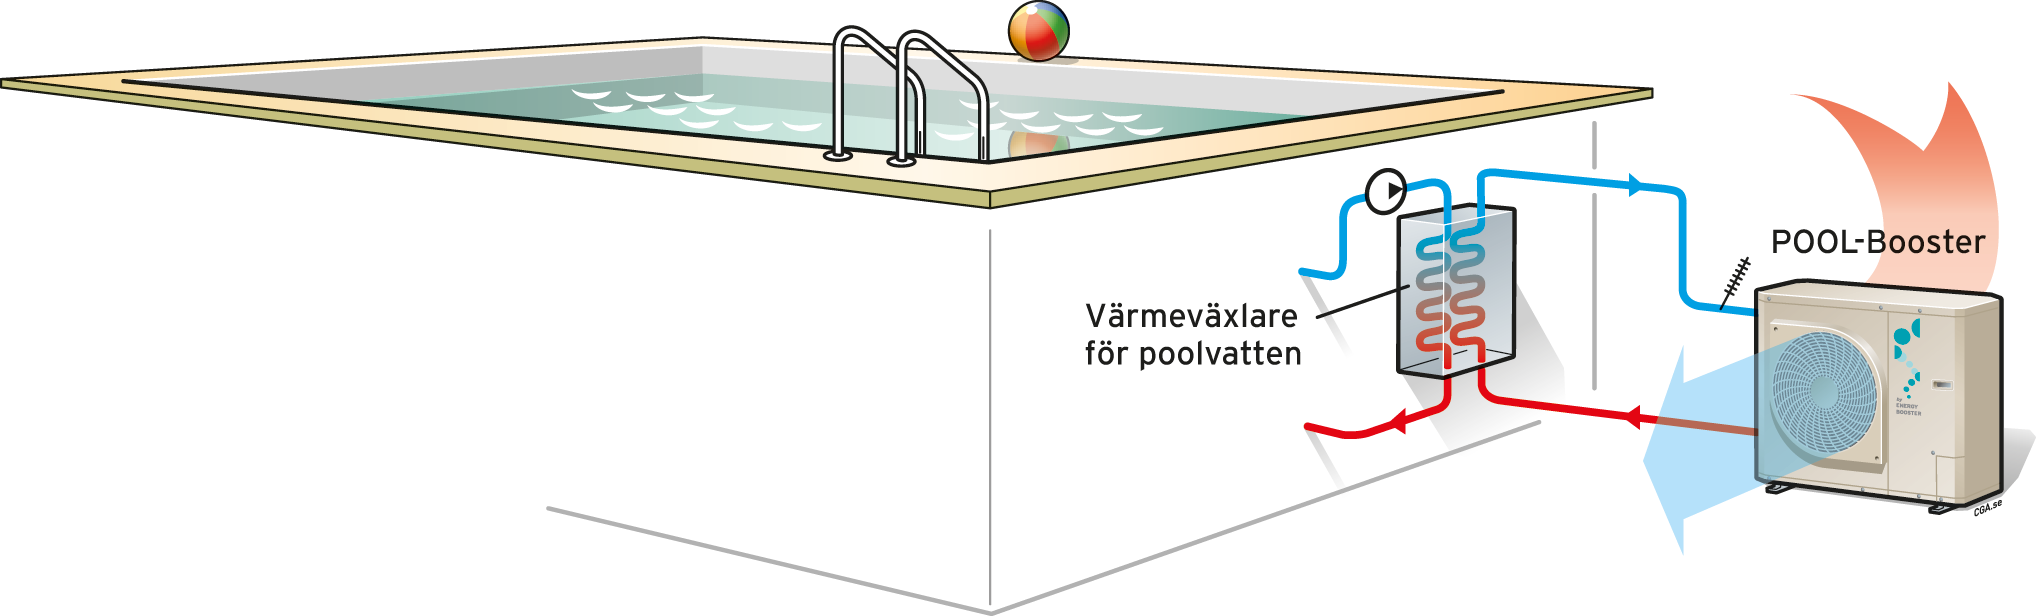 Pool-Booster illustrerad översikt